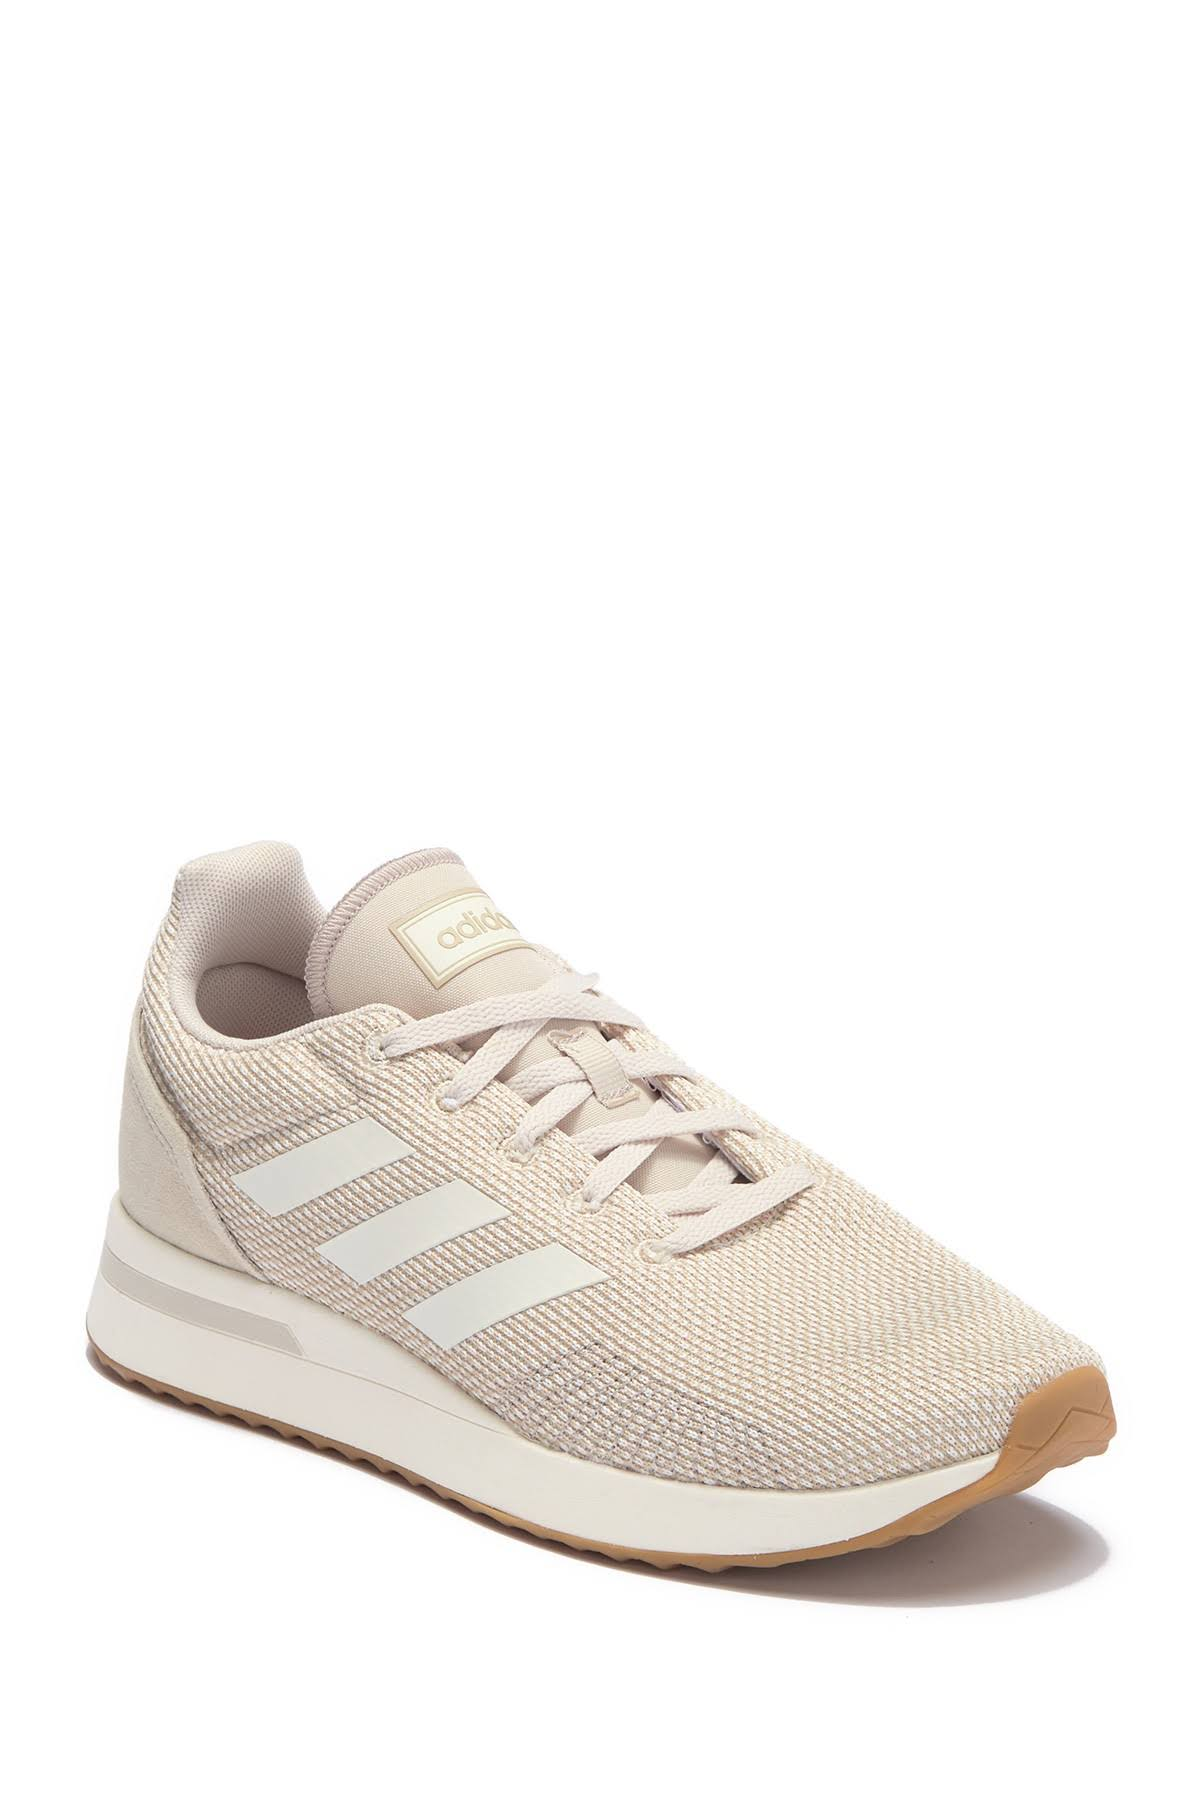 Laufen Damen 7 Run Light Shoes Adidas 70s Brown AwfZqCzx